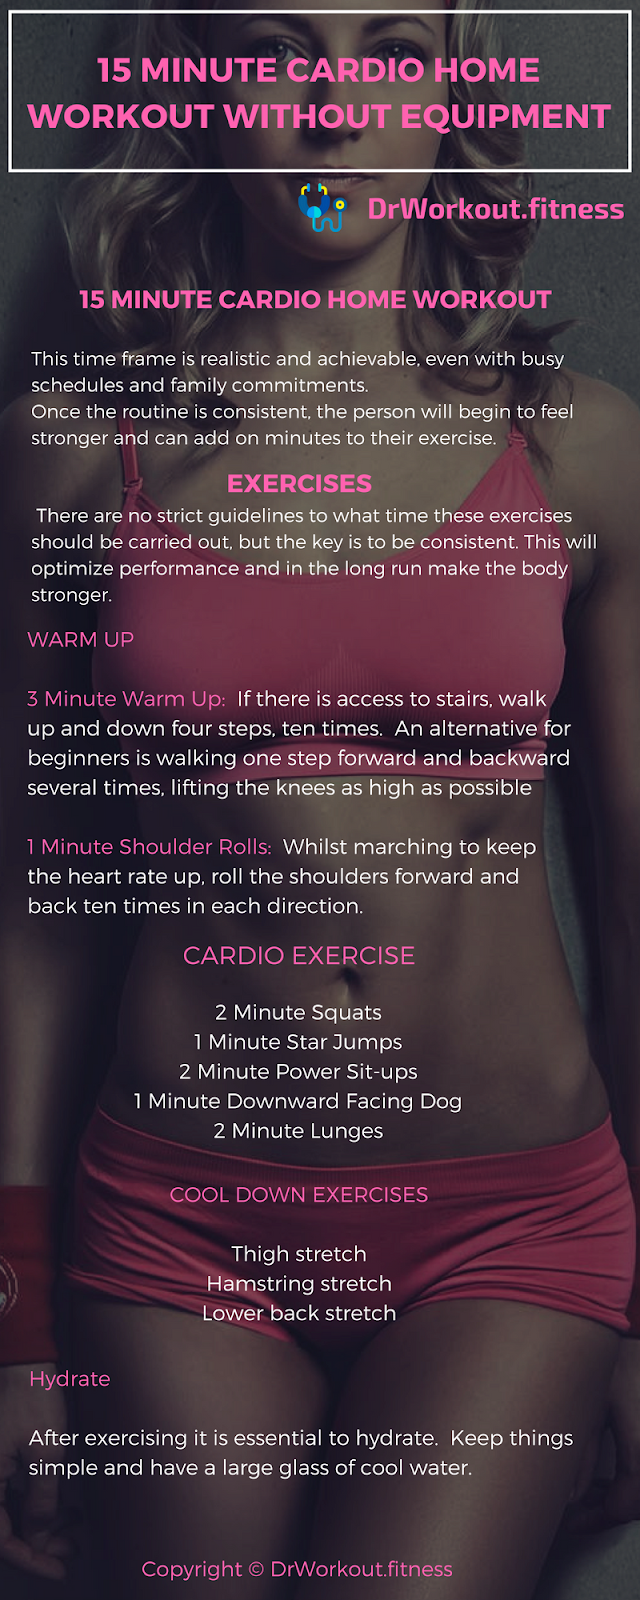 15 minute cardio home workout without equipment